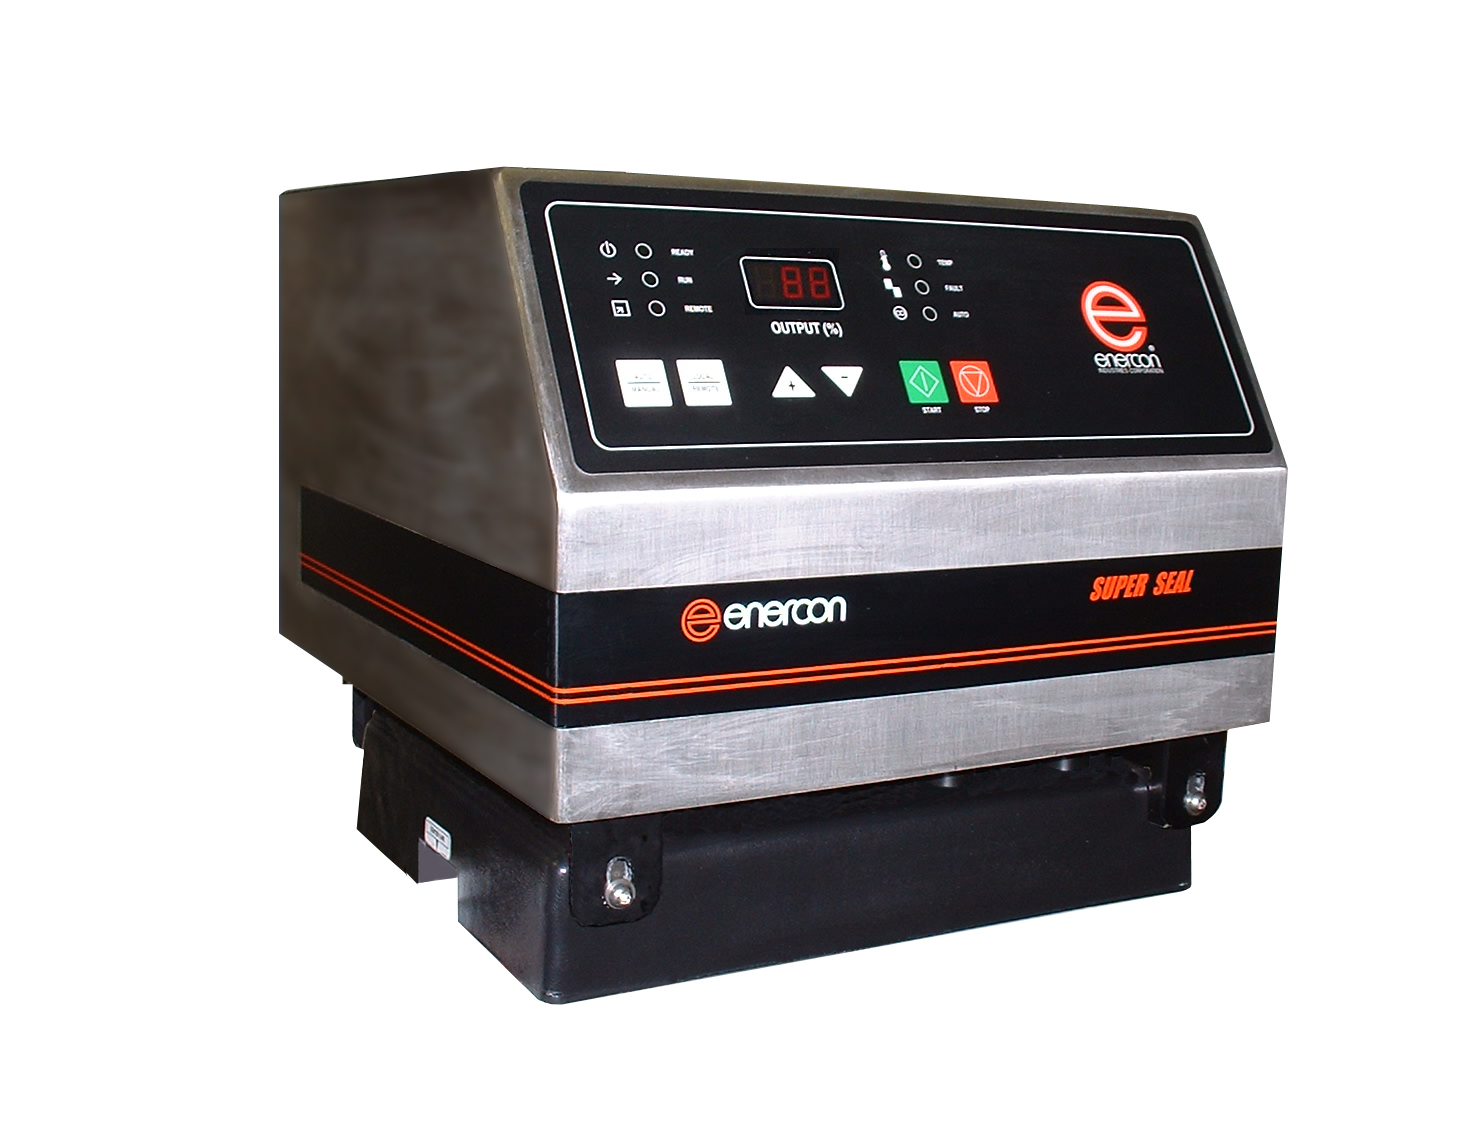 Enercon Super Seal Induction Sealer